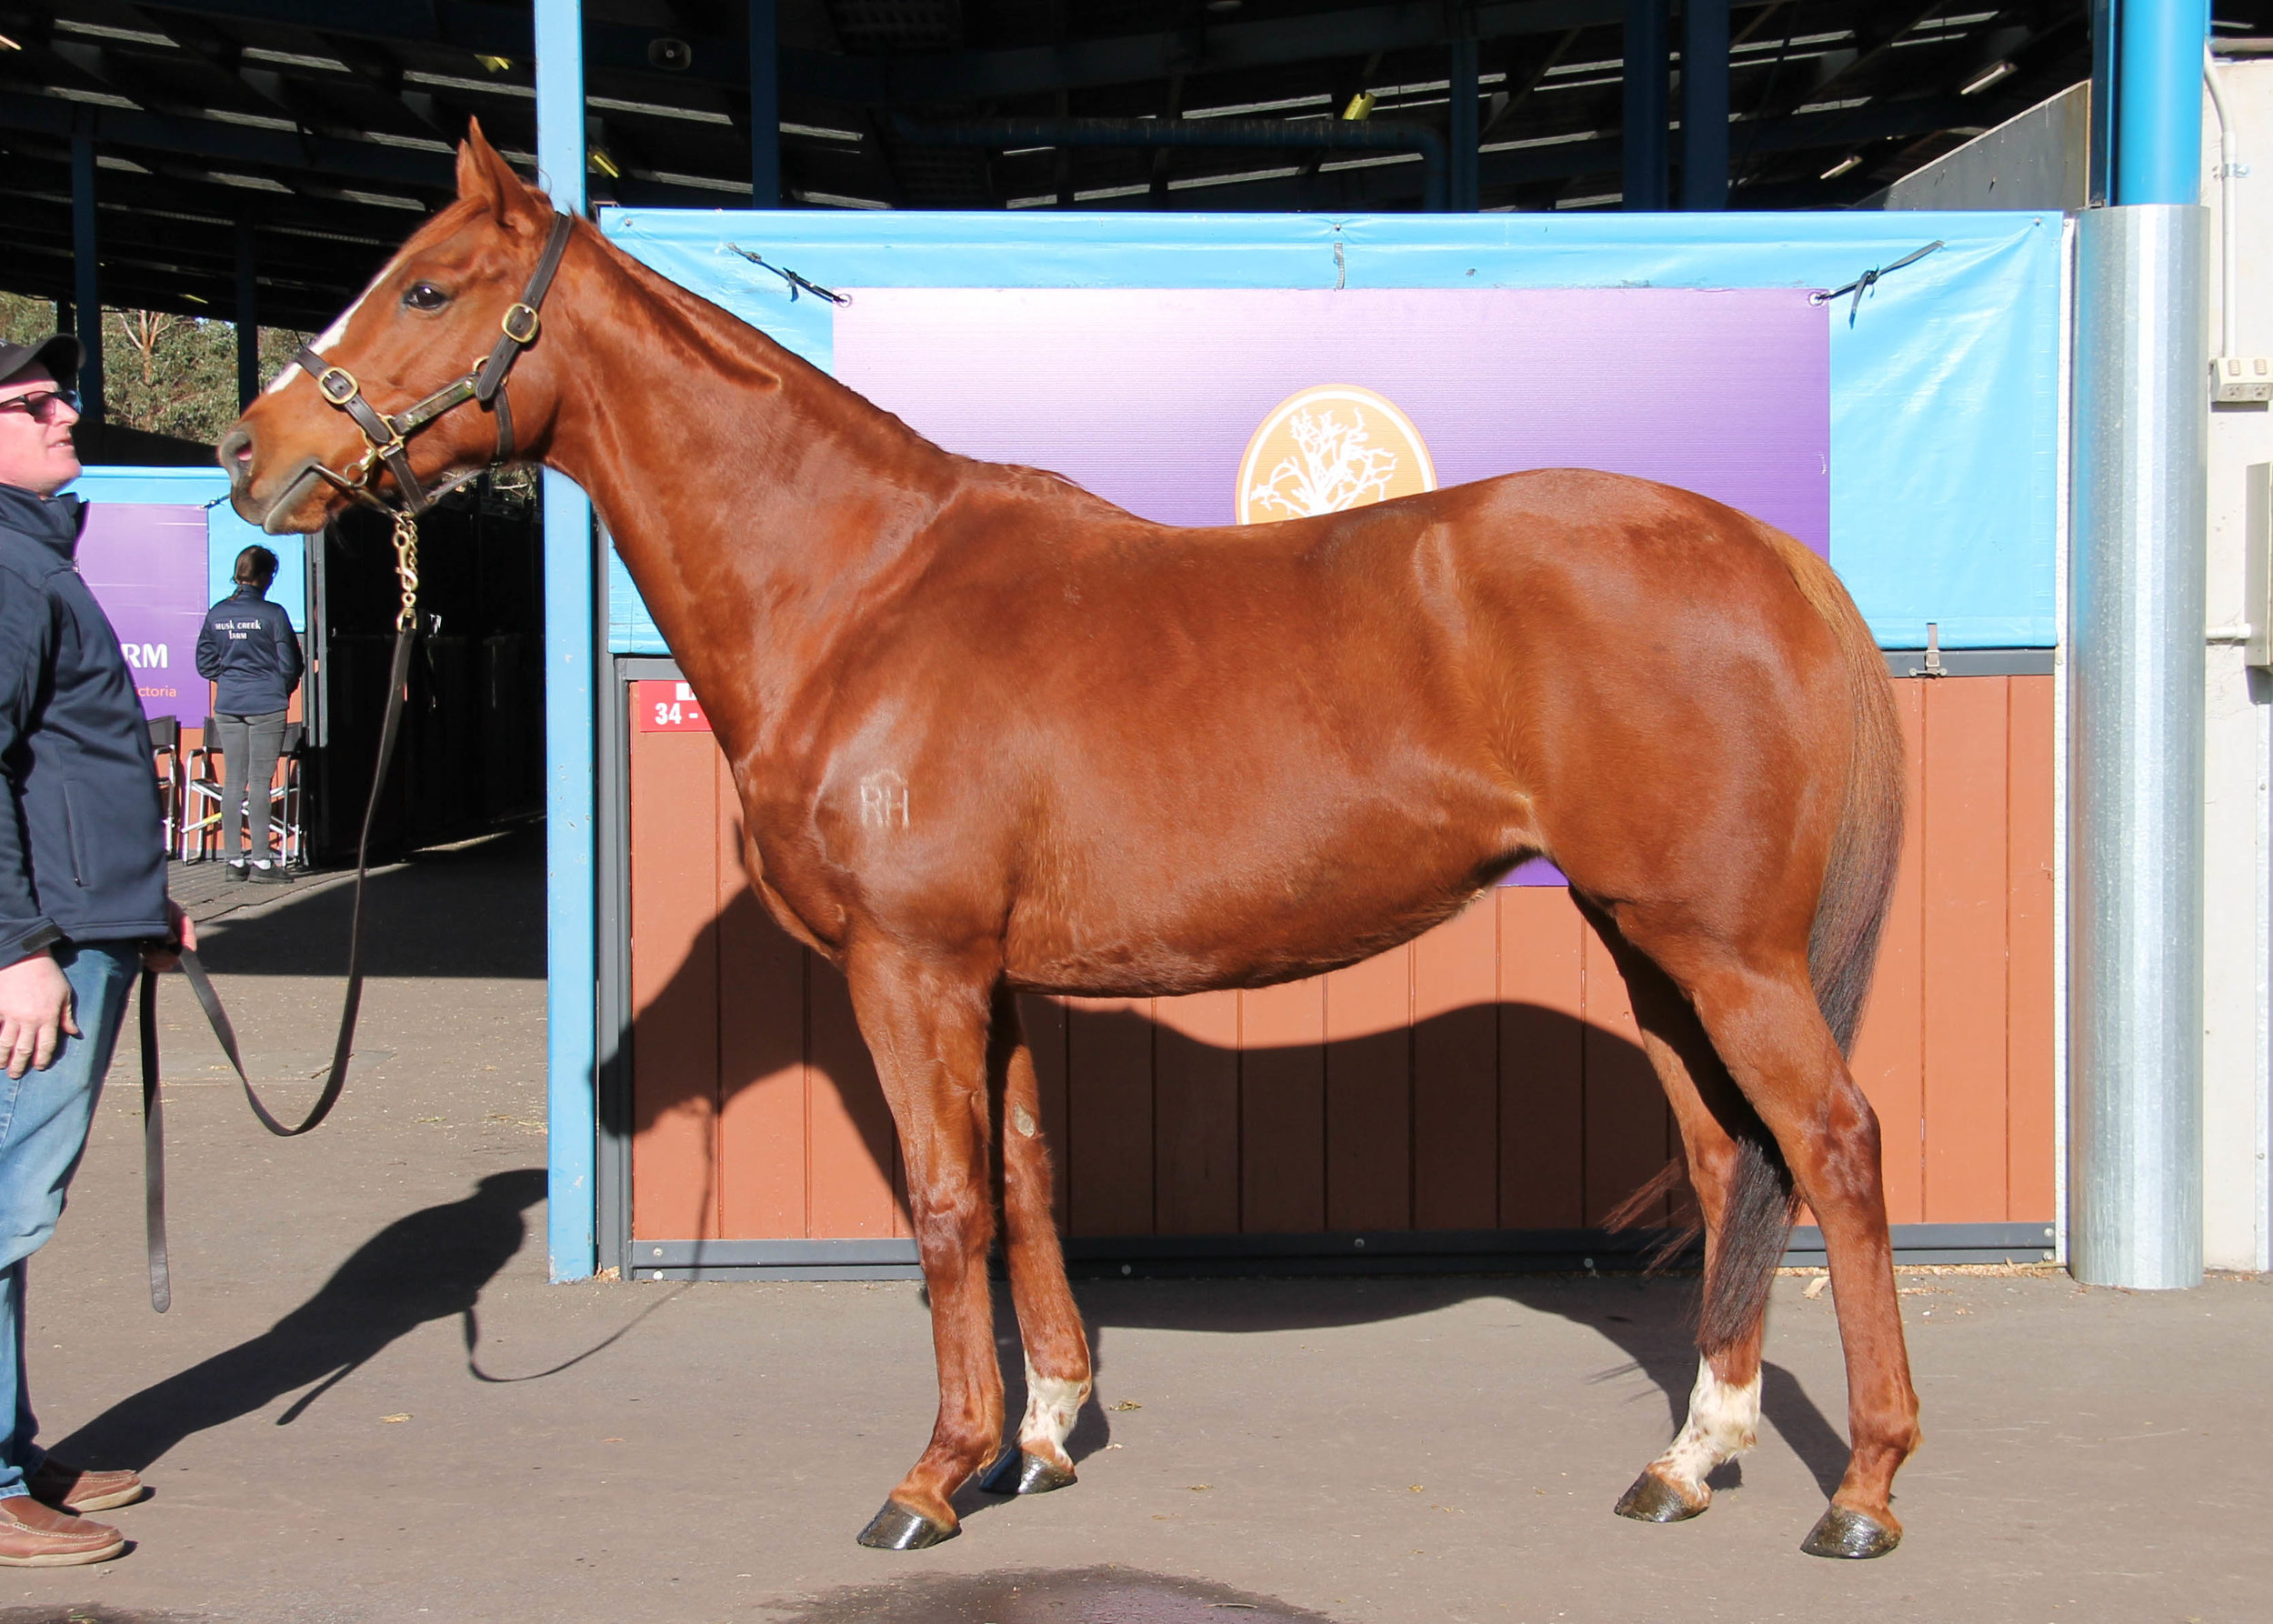 Lot 767 - So Vital (NZ) - In Foal to Toronado (IRE) - Sold for $10,000 to Daisy Hill Stud VIC